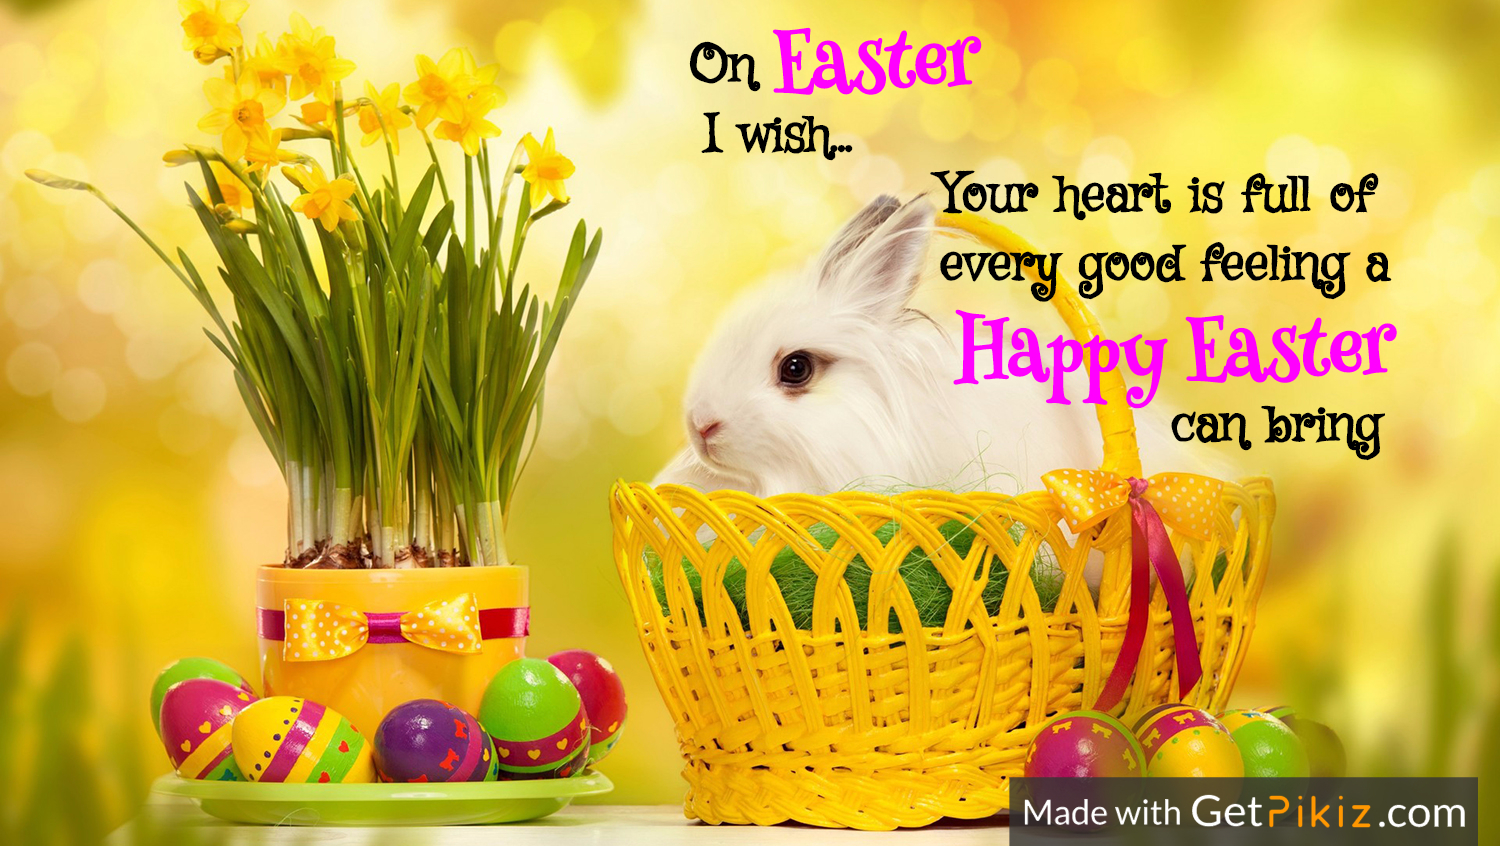 On Easter I wish... Your heart is full of every good feeling a  Happy Easter can bring